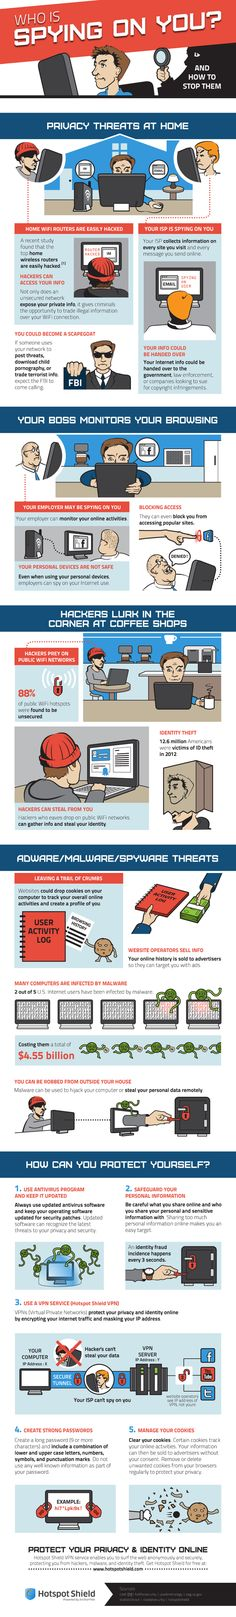 We're all aware of computer hackers. Today's infographic lets us know just how easy it is for our information to be tracked.